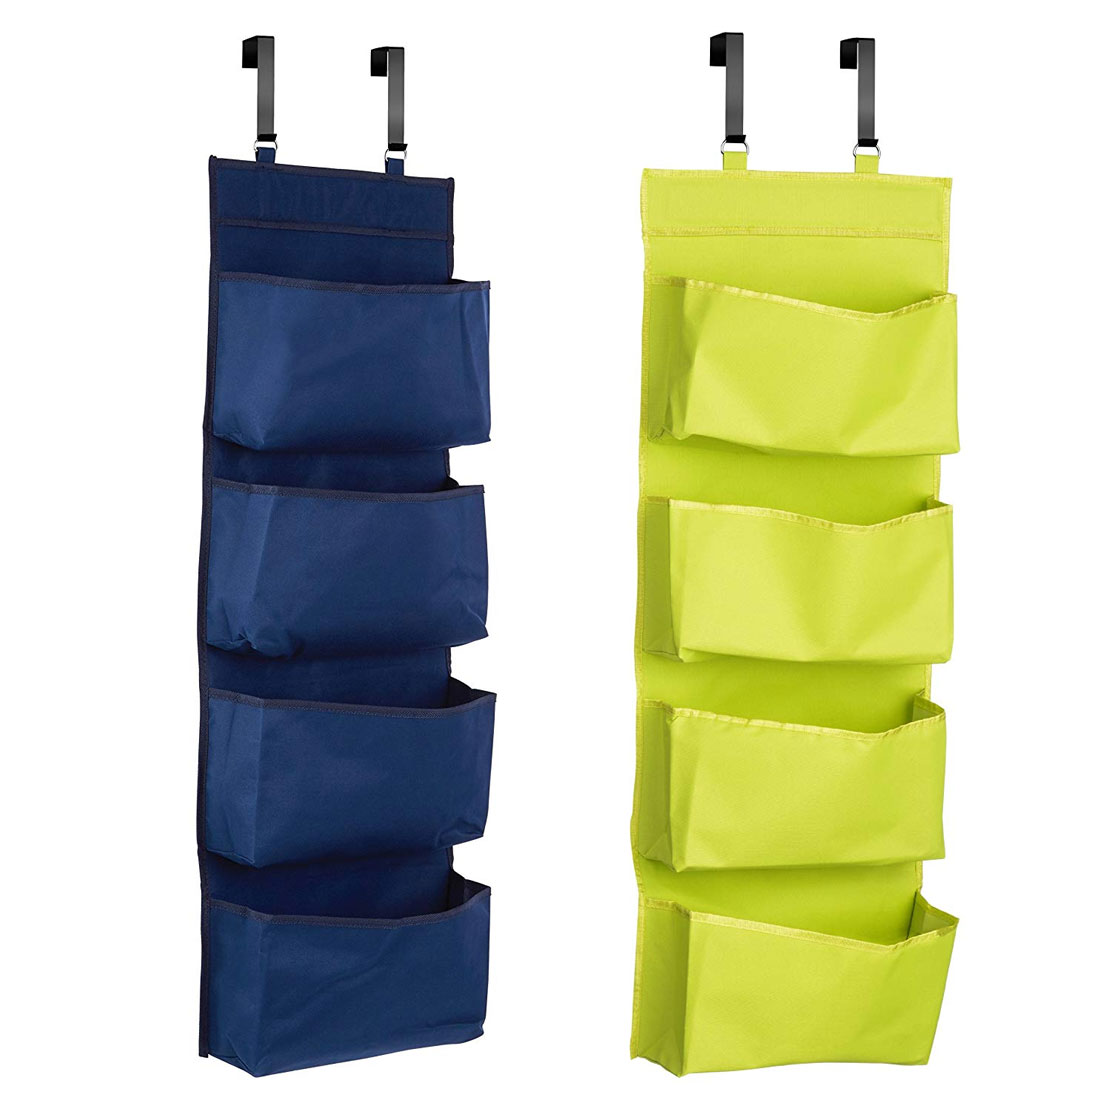 4 Grids Wall Hanging Organizer Storage Bag Containing Toys Decor Pocket Pouch Home Decor Hanging Bag